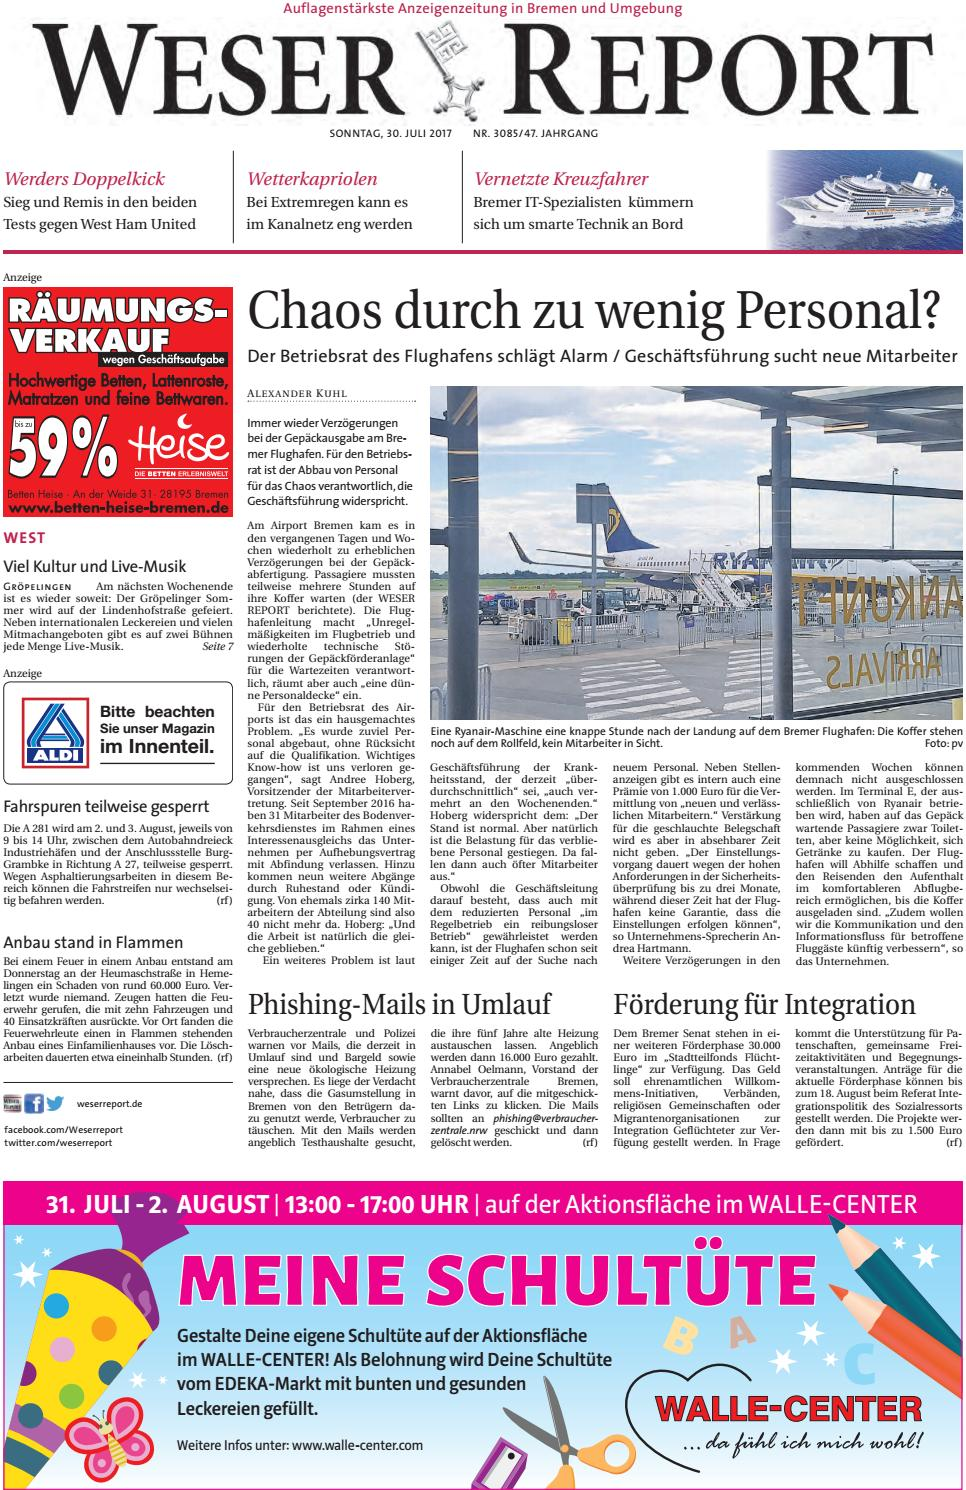 Weser Report West vom 30.07.2017 by KPS